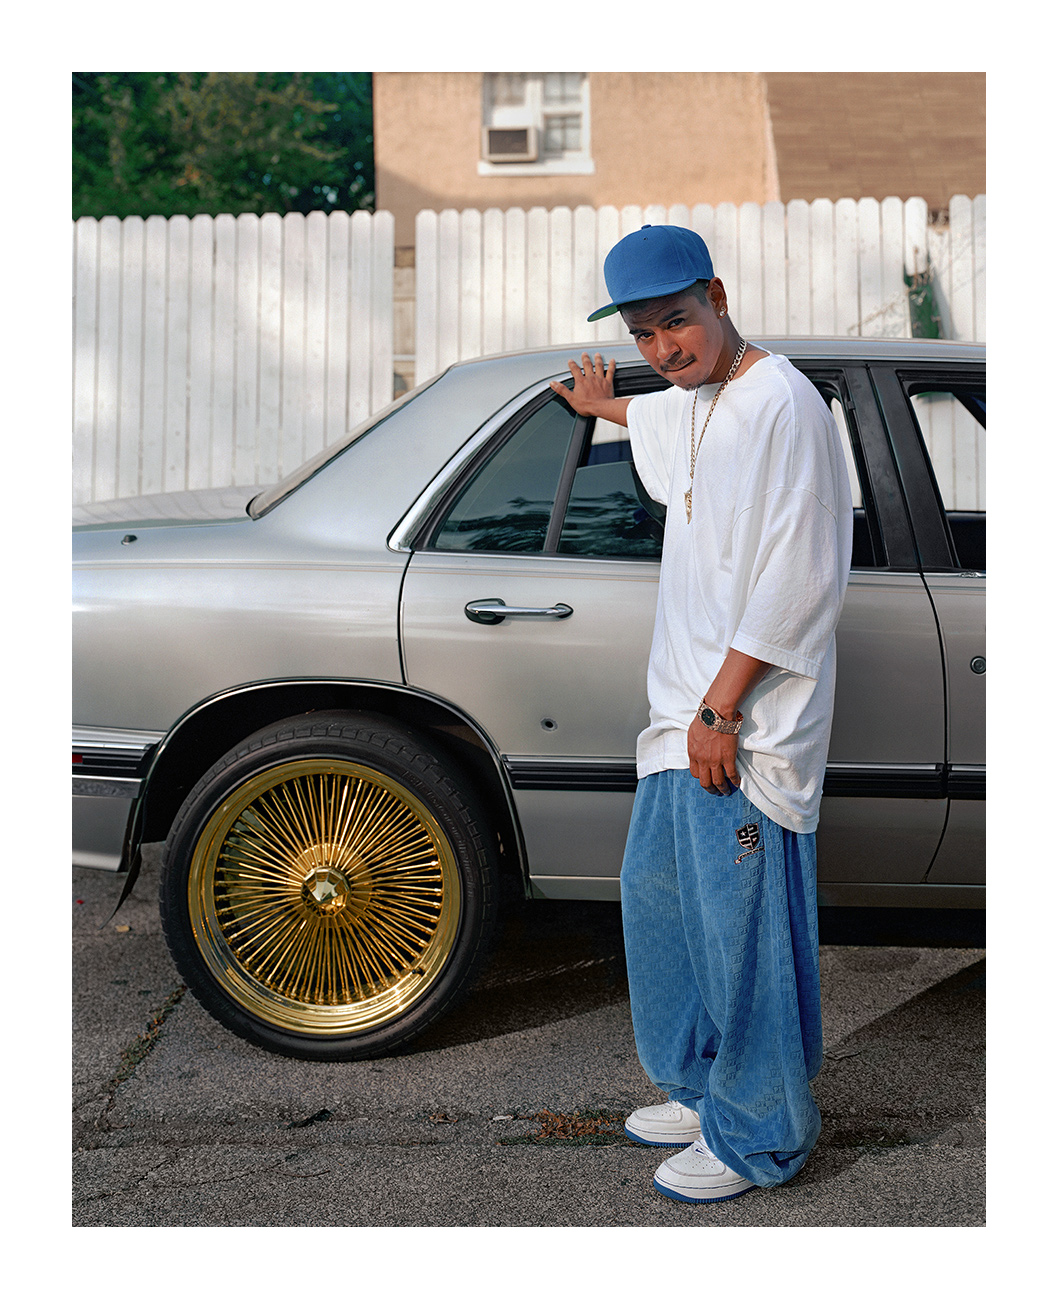 David Showing Bullet Hole in His Car, Marktown, East Chicago IN 2003